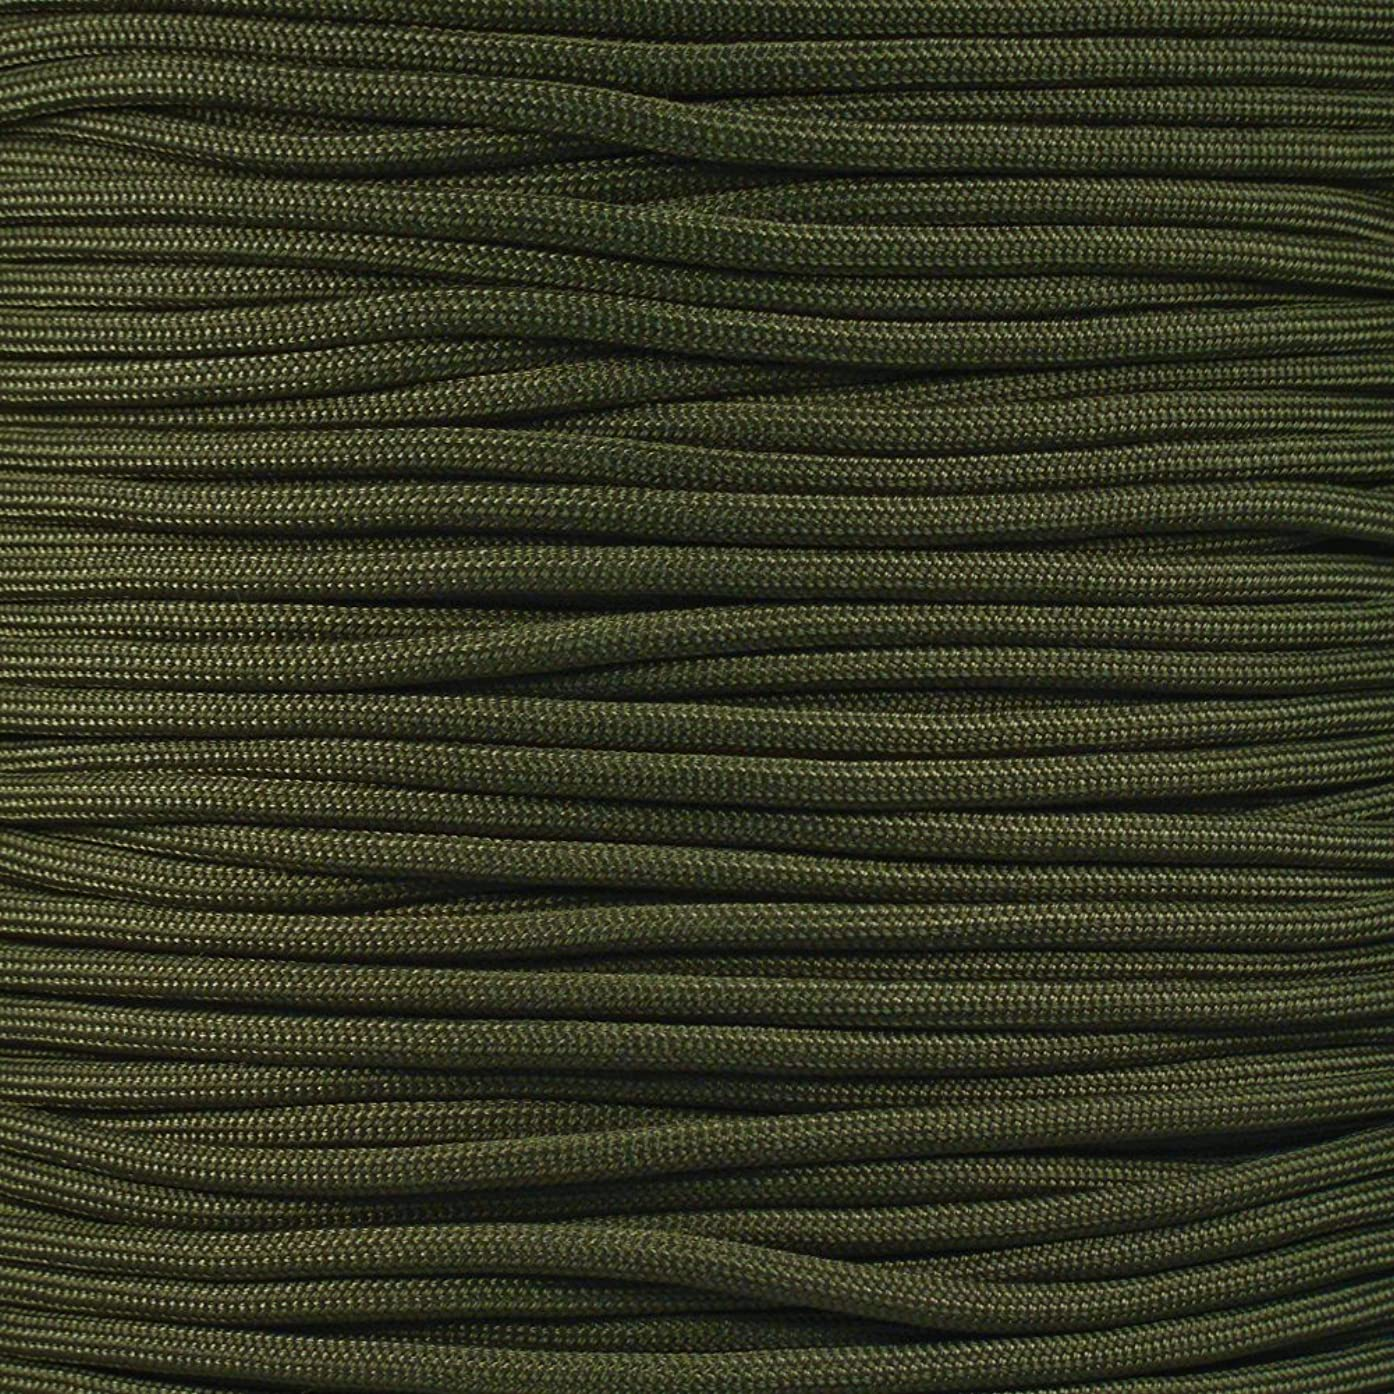 PARACORD PLANET Olive Drab 550 Fire Cord 50'